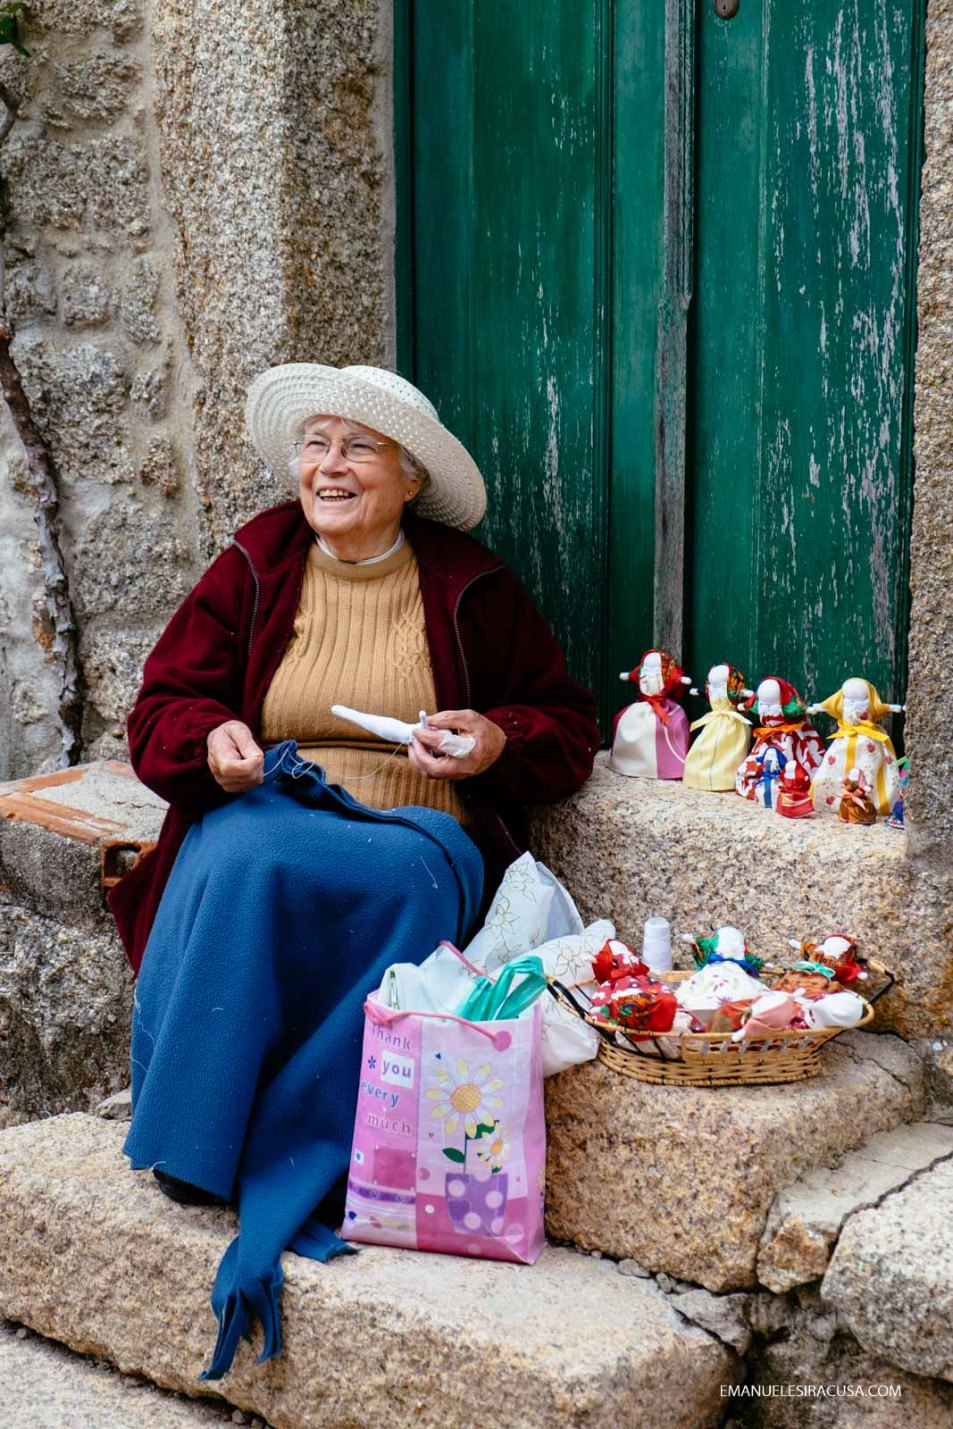 A local elderly lady selling dolls and other hand-made products in the streets of Monsanto, 2016